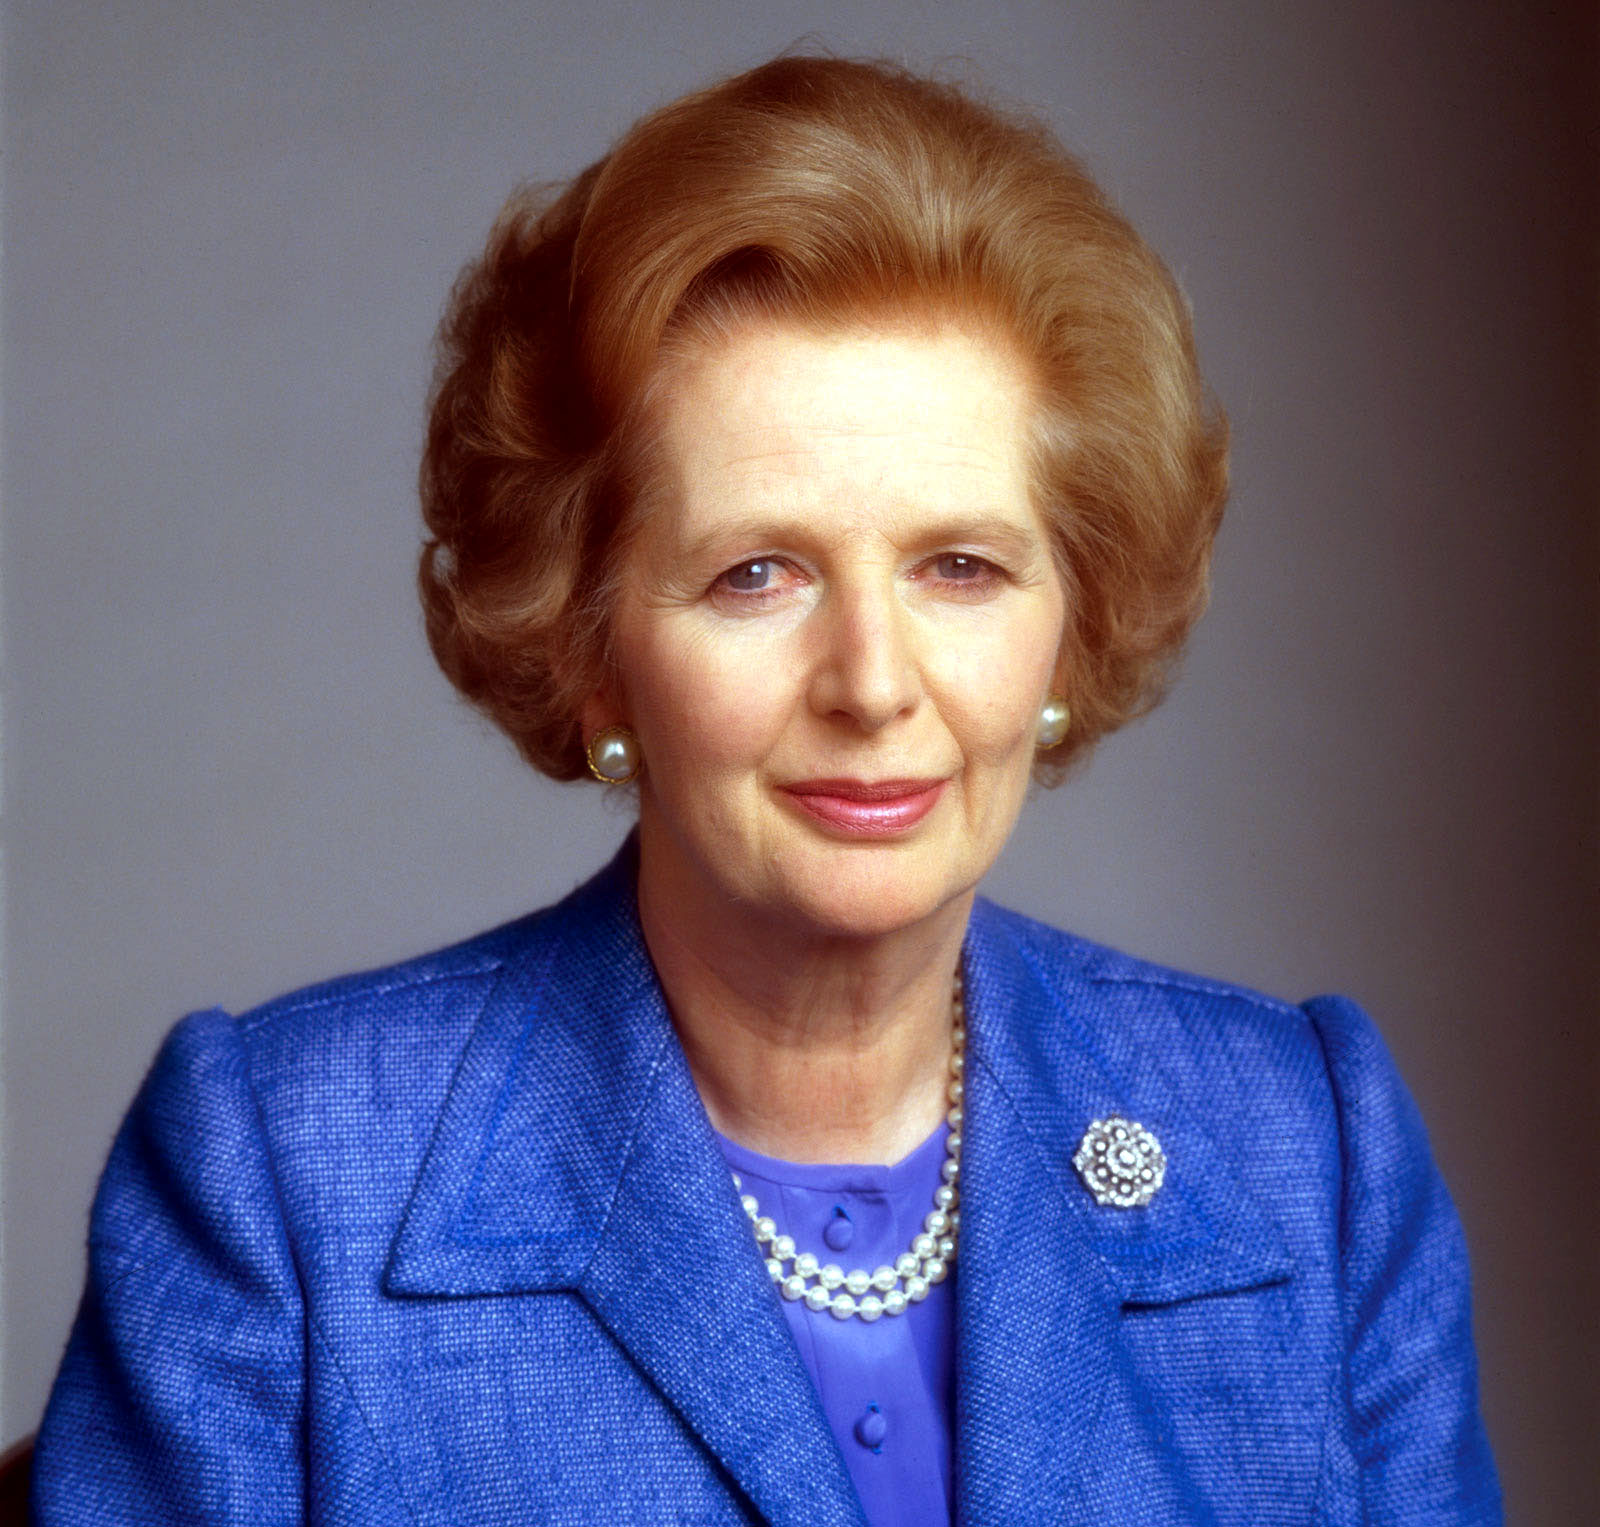 margaret-thatcher | The Daily Sheeple